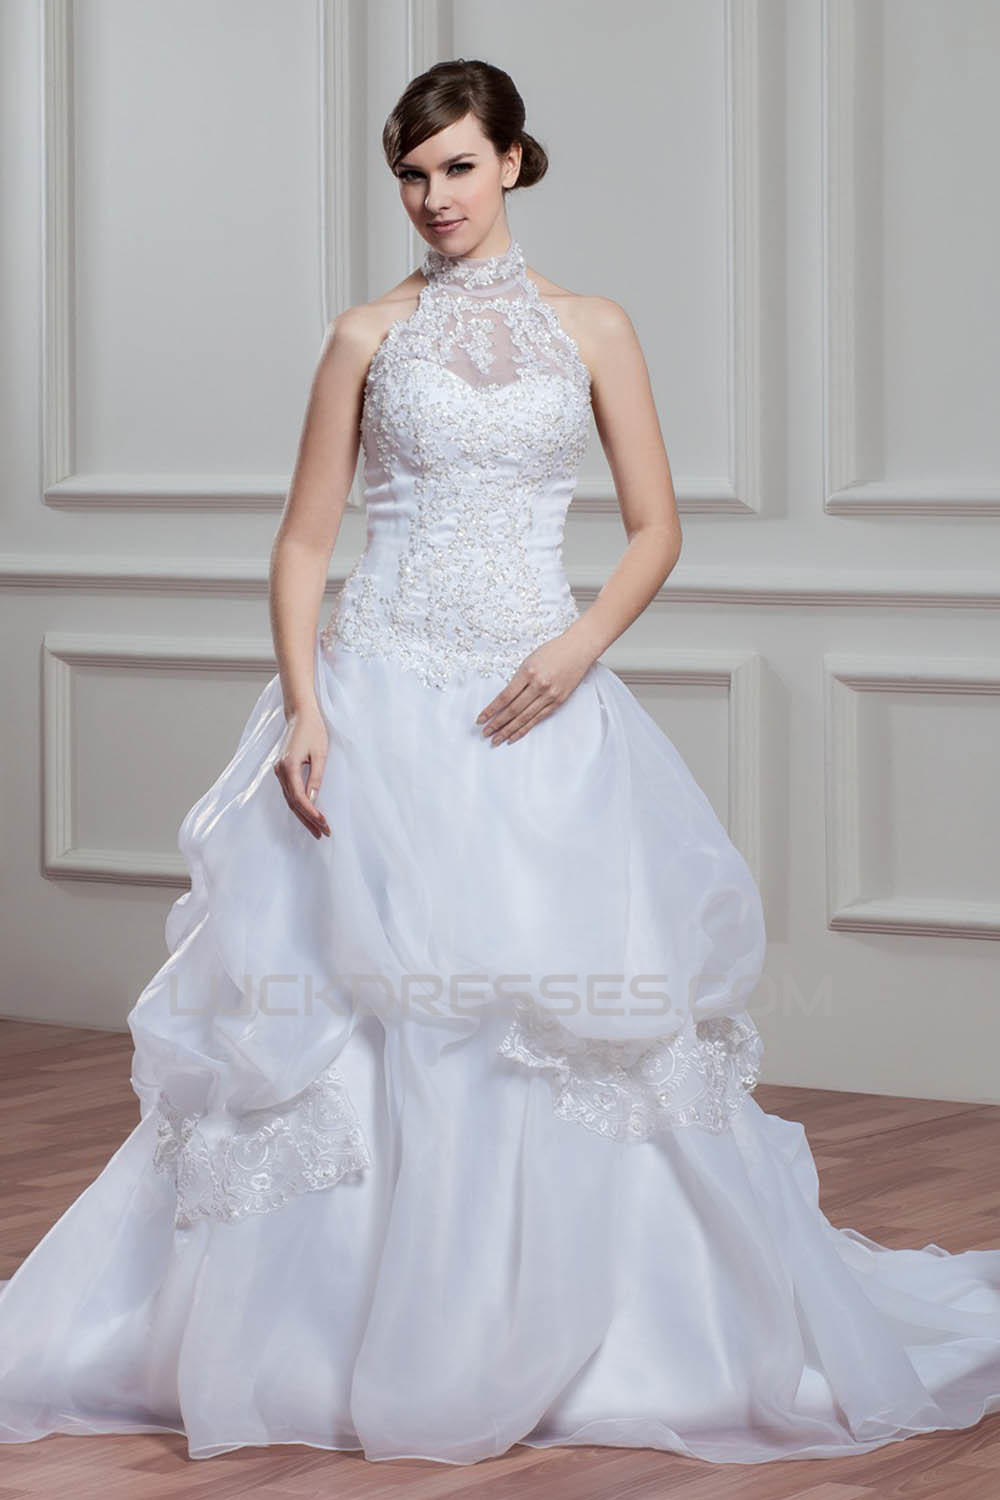 8b671aa4780 A-Line Halter Sleeveless Satin Organza Lace High Neck Wedding Dresses  2030756